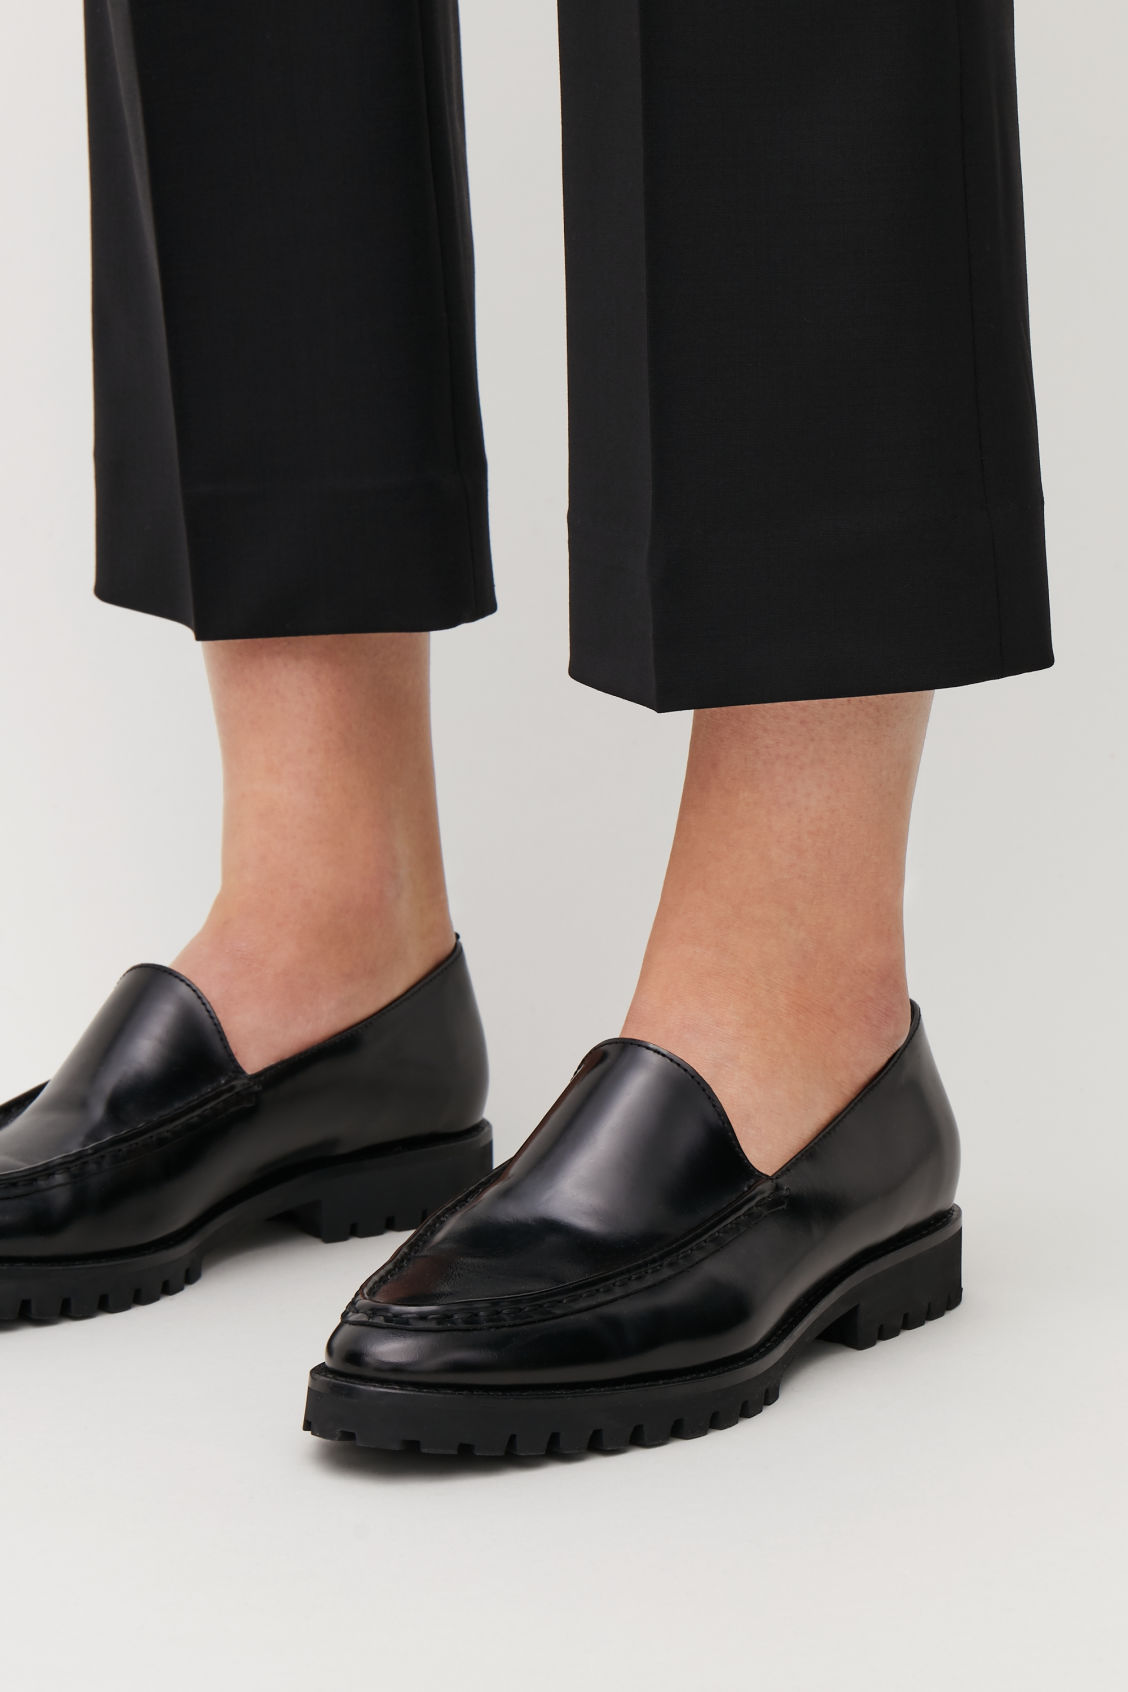 Detailed image of Cos ridged-sole leather loafers in black